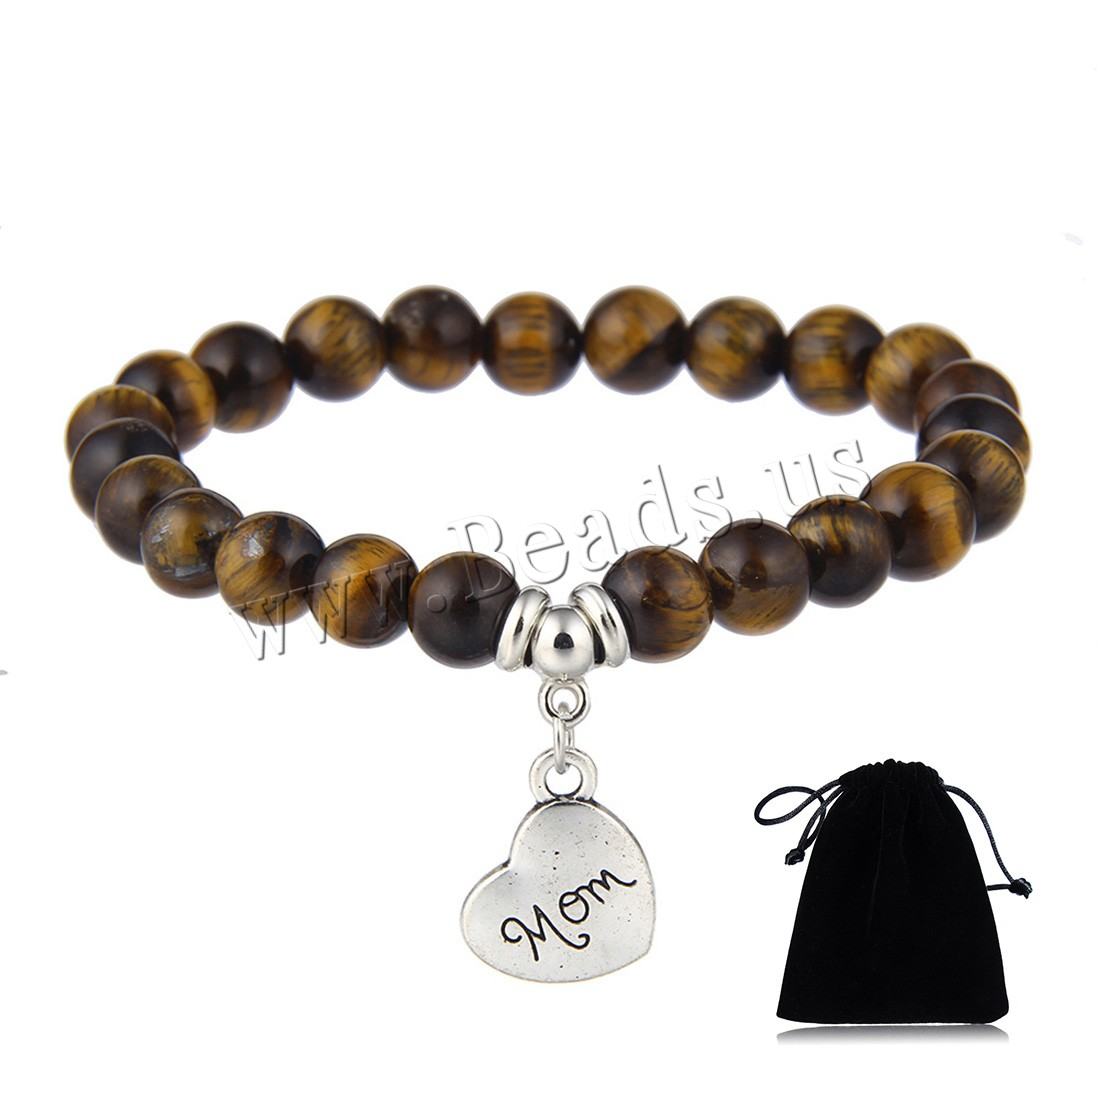 Buy Natural Stone Bracelet Zinc Alloy Heart word mom platinum color plated charm bracelet & Mother Day Jewelry & different materials choice & woman 8mm 14x14mm Sold Per Approx 7.5 Inch Strand